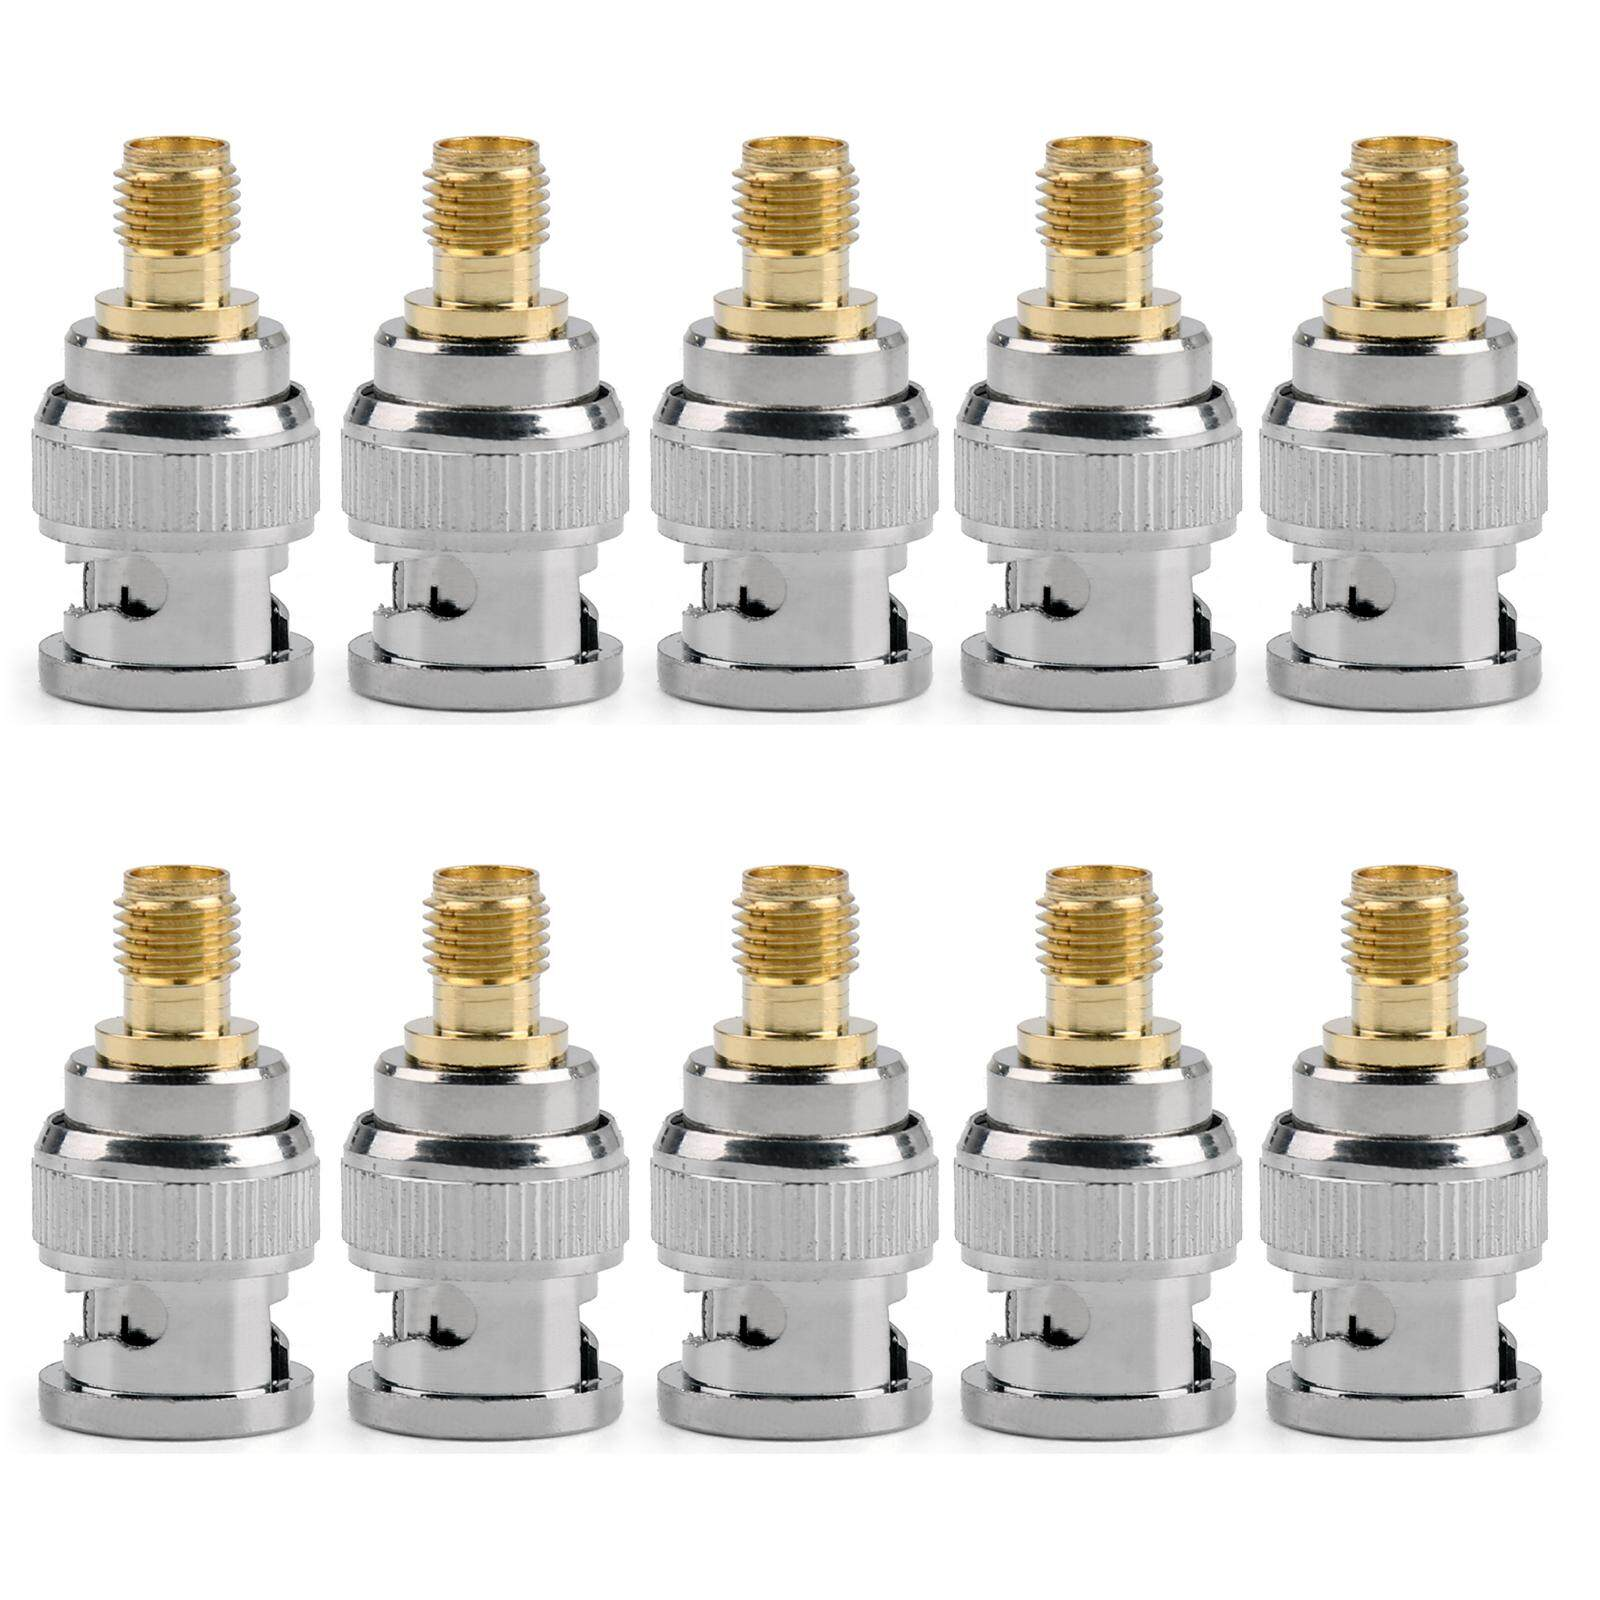 Areyourshop 10Pcs Adapter Converter BNC Male Plug To SMA Female Jack Pin RF Coaxial - intl